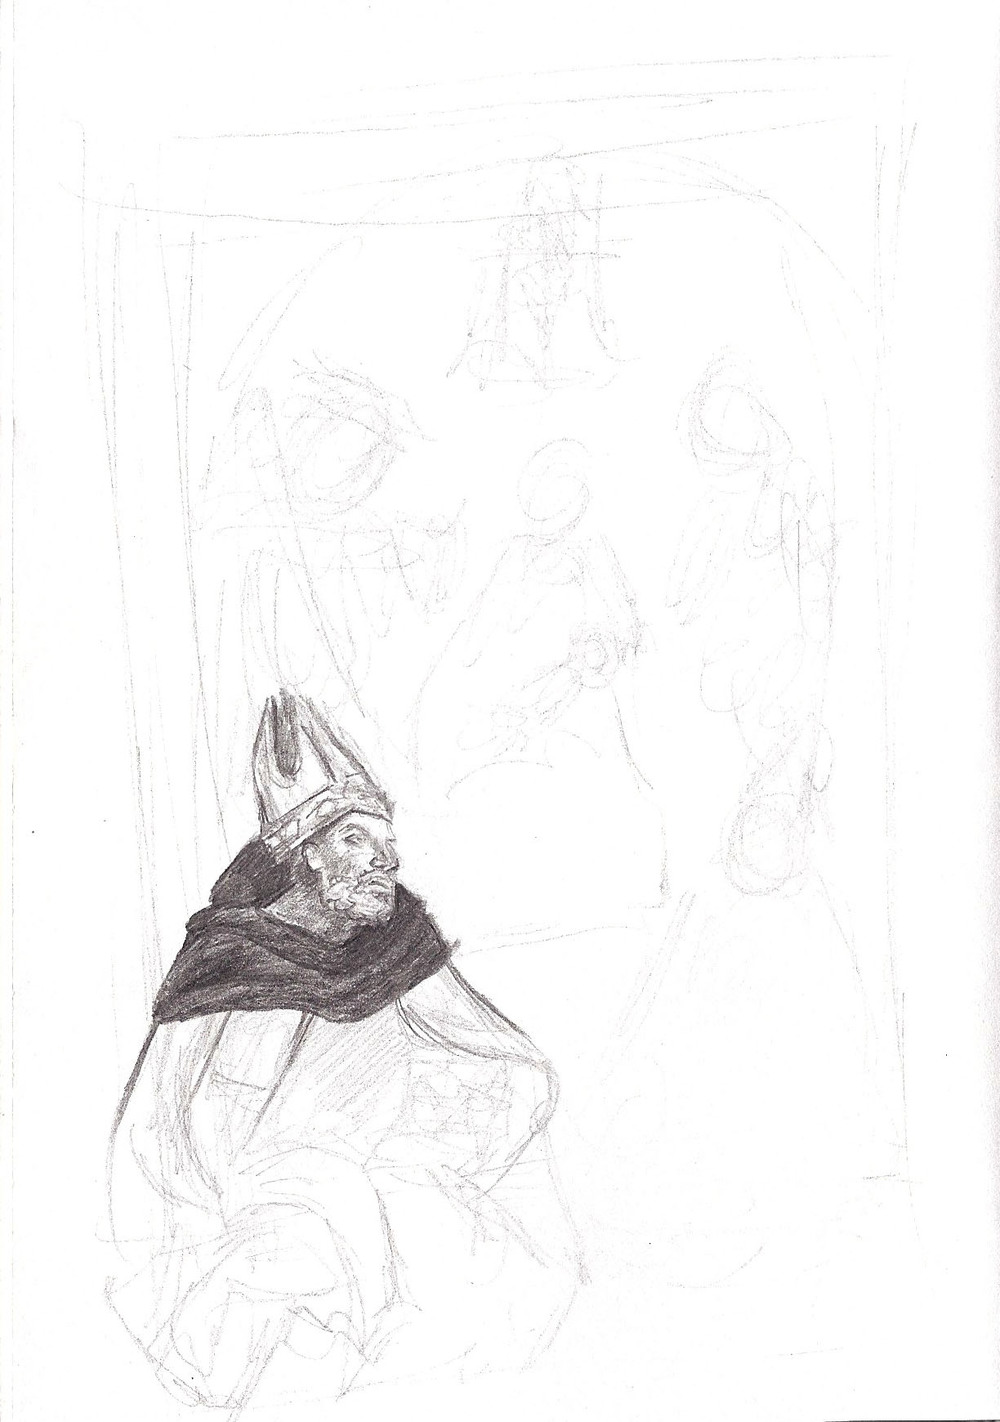 Sketch from a painting in the Uffizi in Florence, Italy.